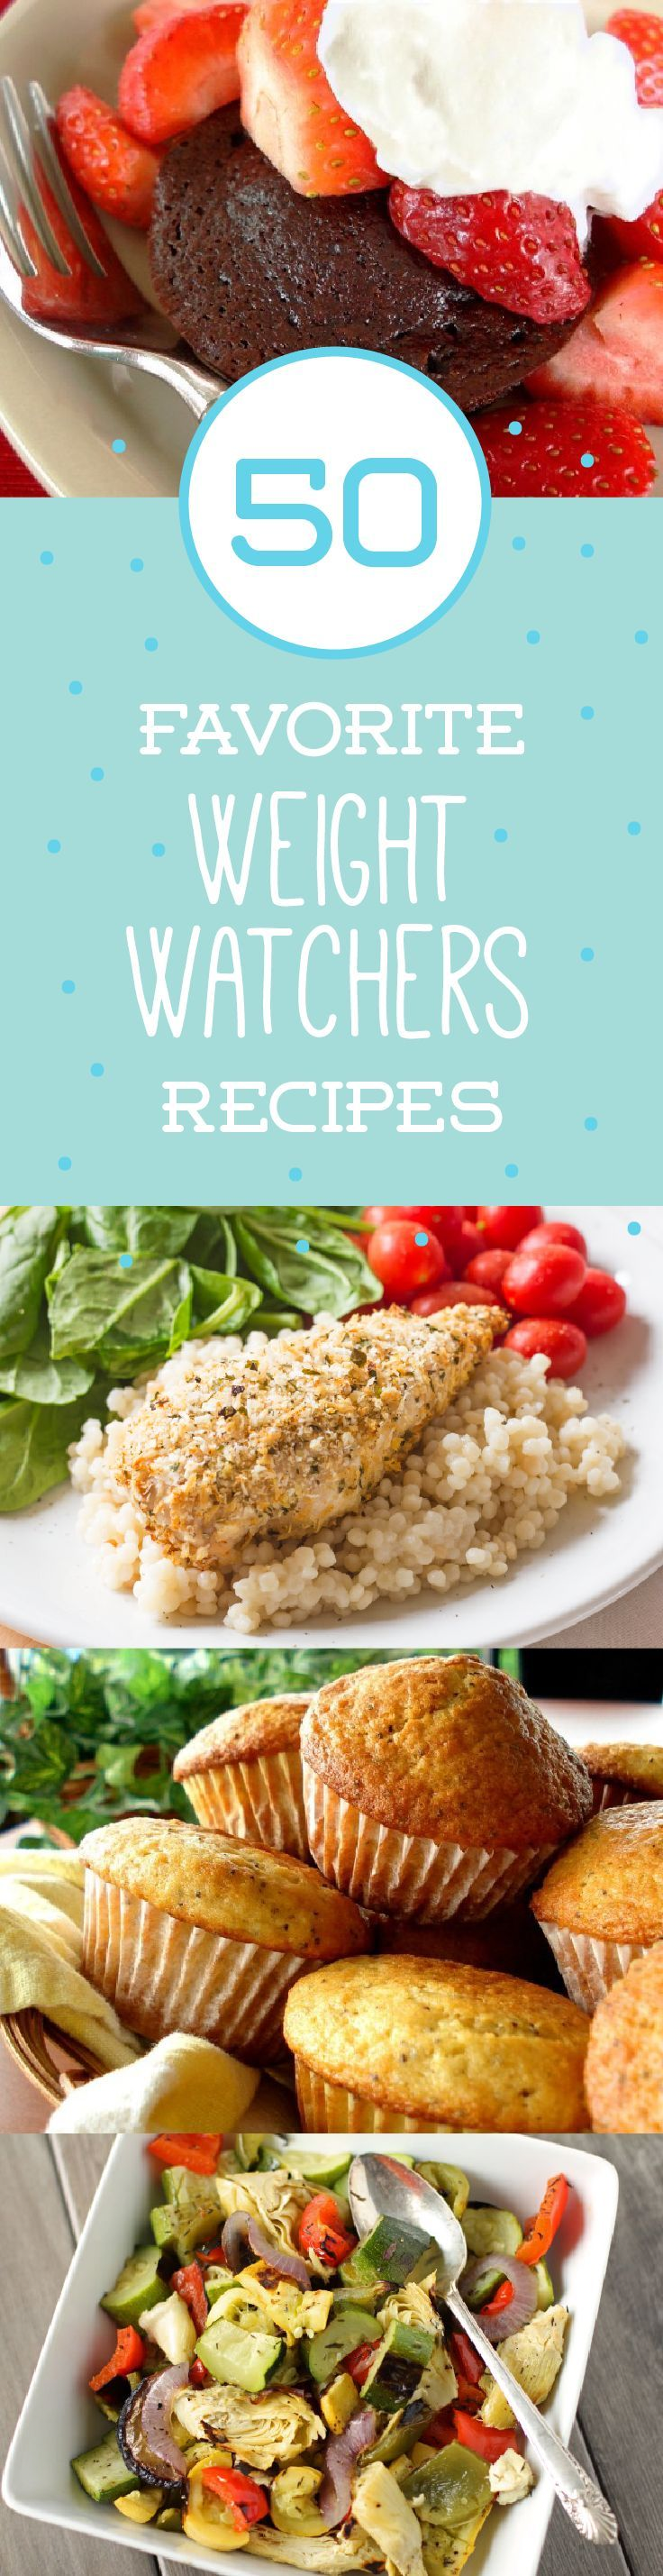 No need to buy prepared meals with these 50 recipes. Try these Weight Watchers favorites, including Deep-Dish Pizza Casserole and Banana Bread.